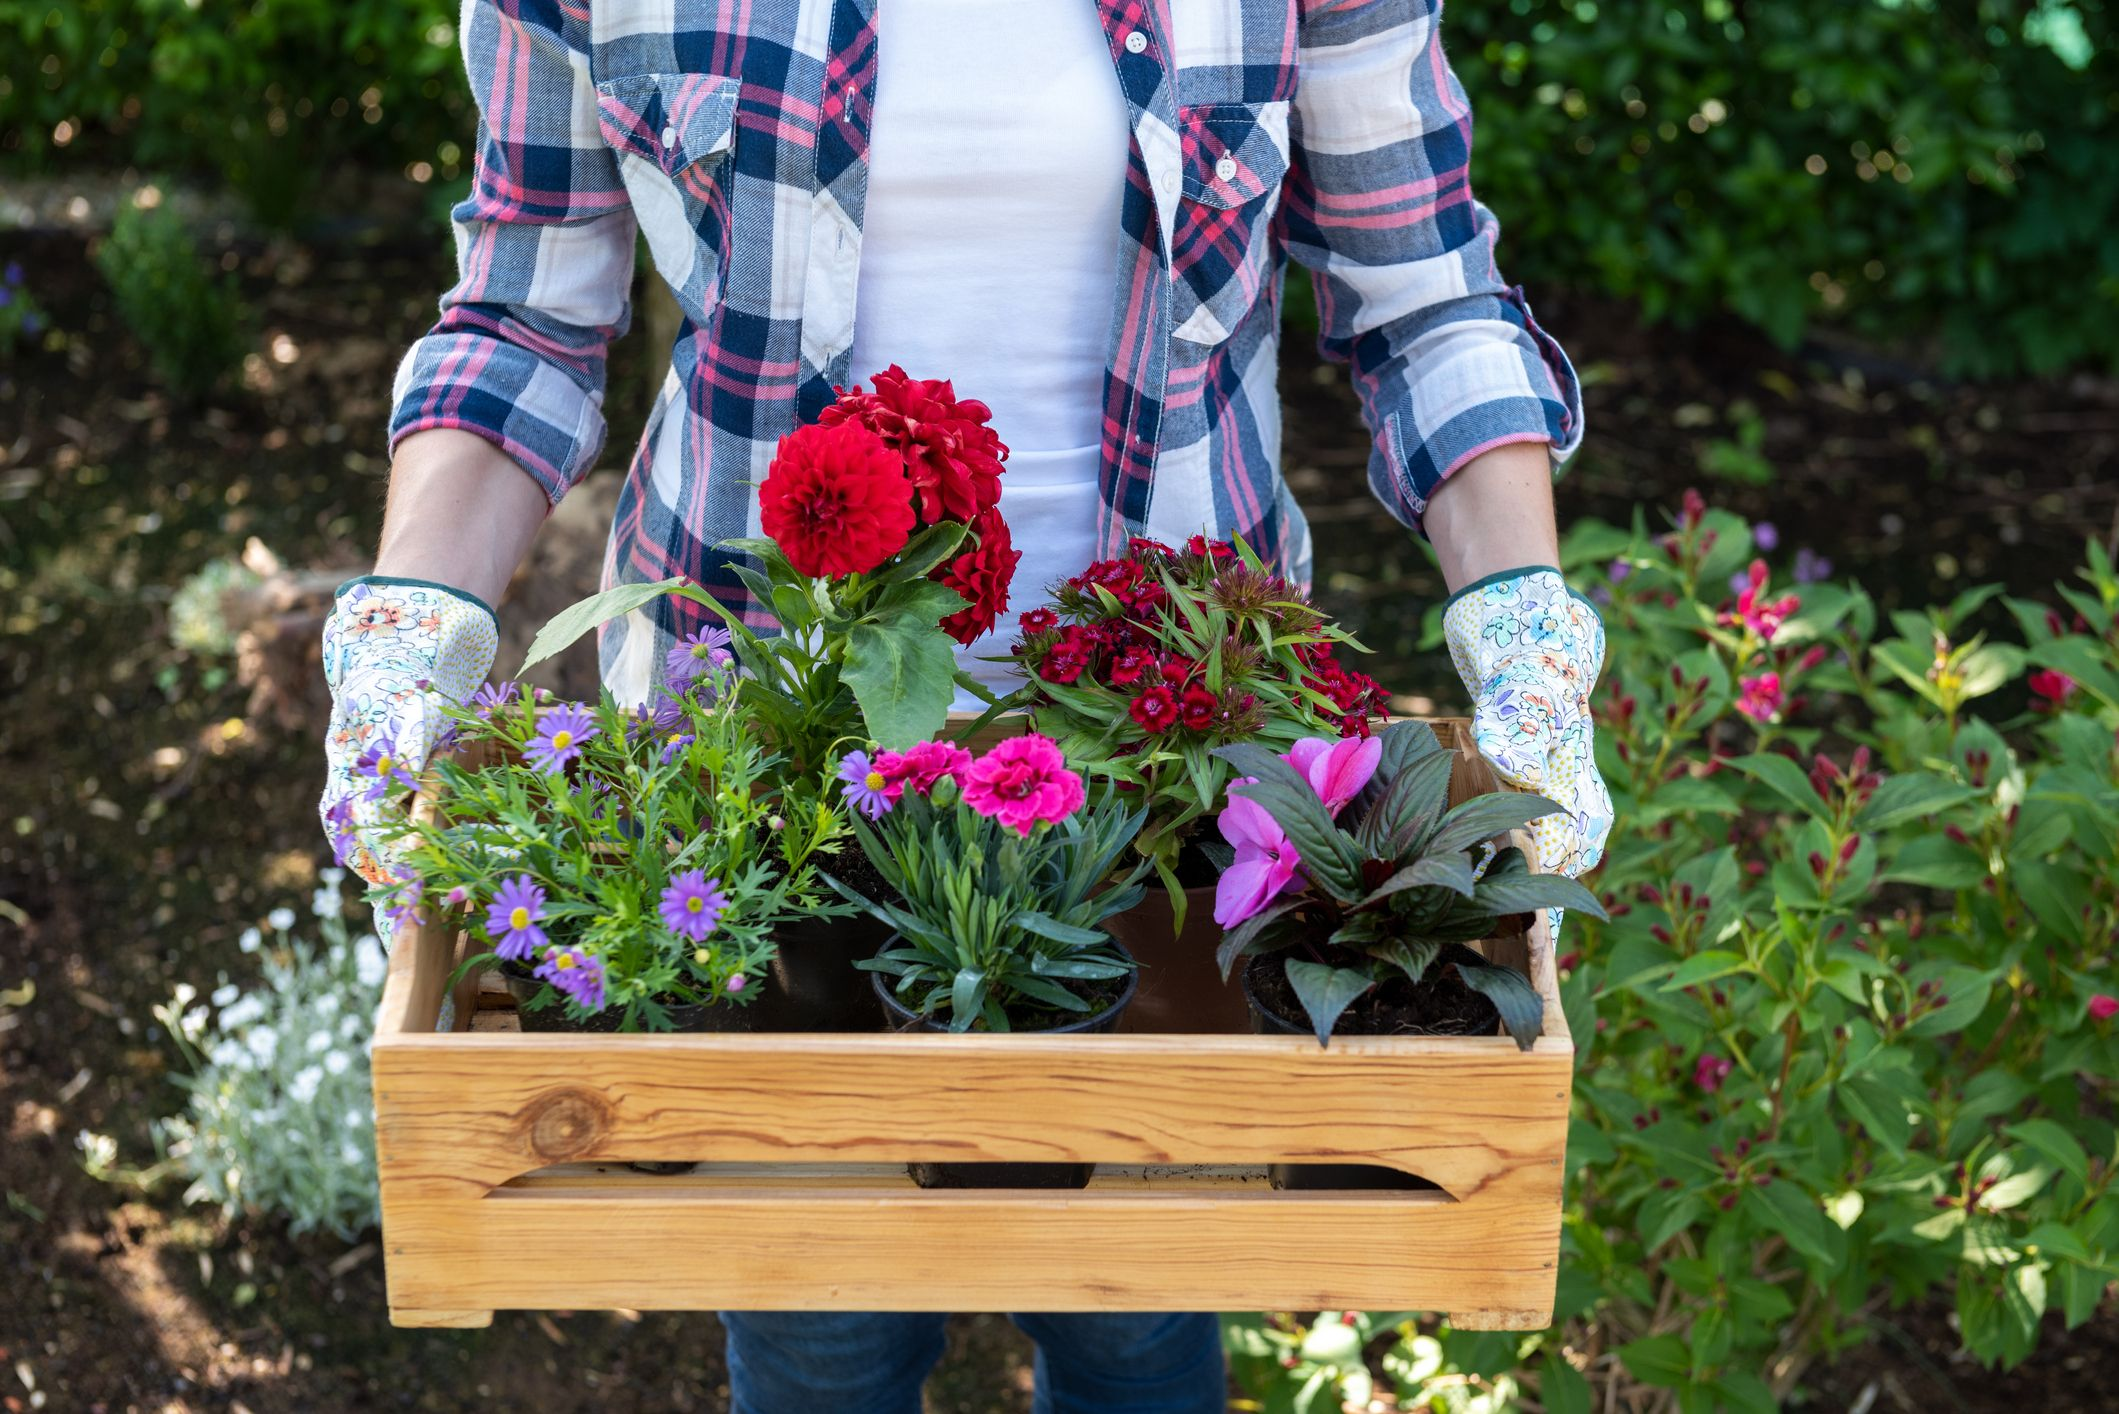 7 tips on how to be a mindful gardener